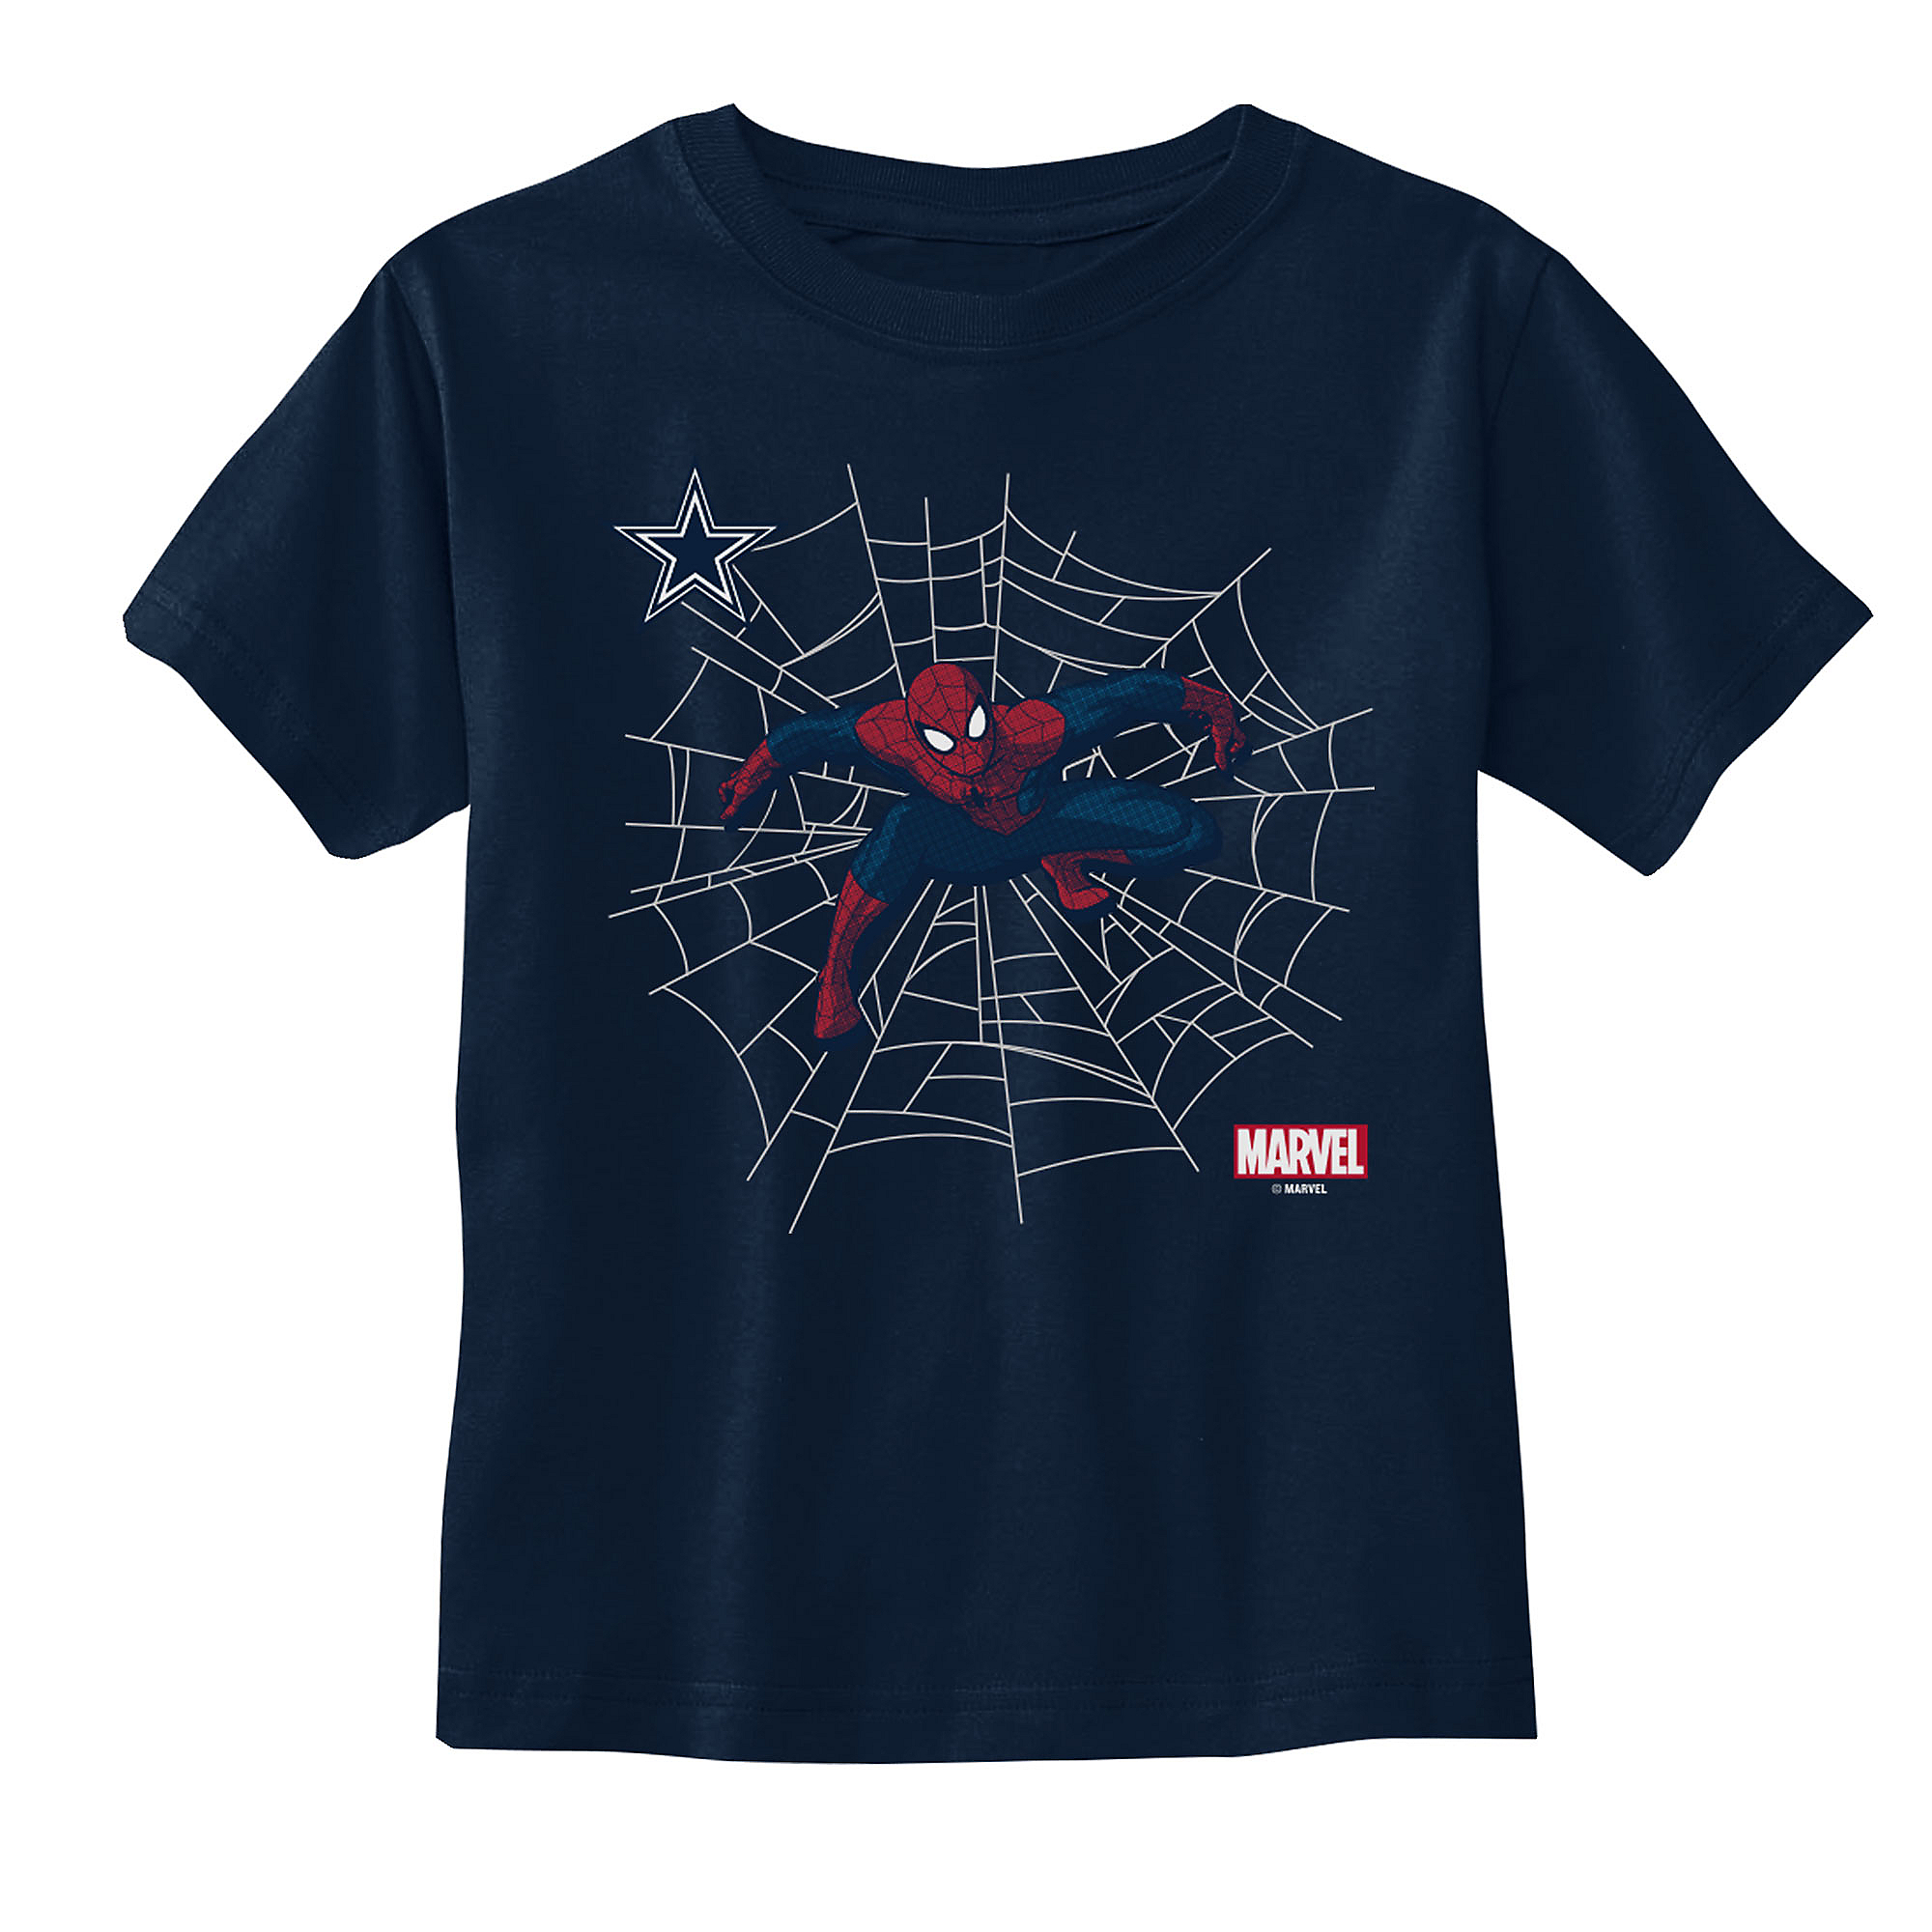 Dallas Cowboys MARVEL Toddler Spidey Sense T-Shirt